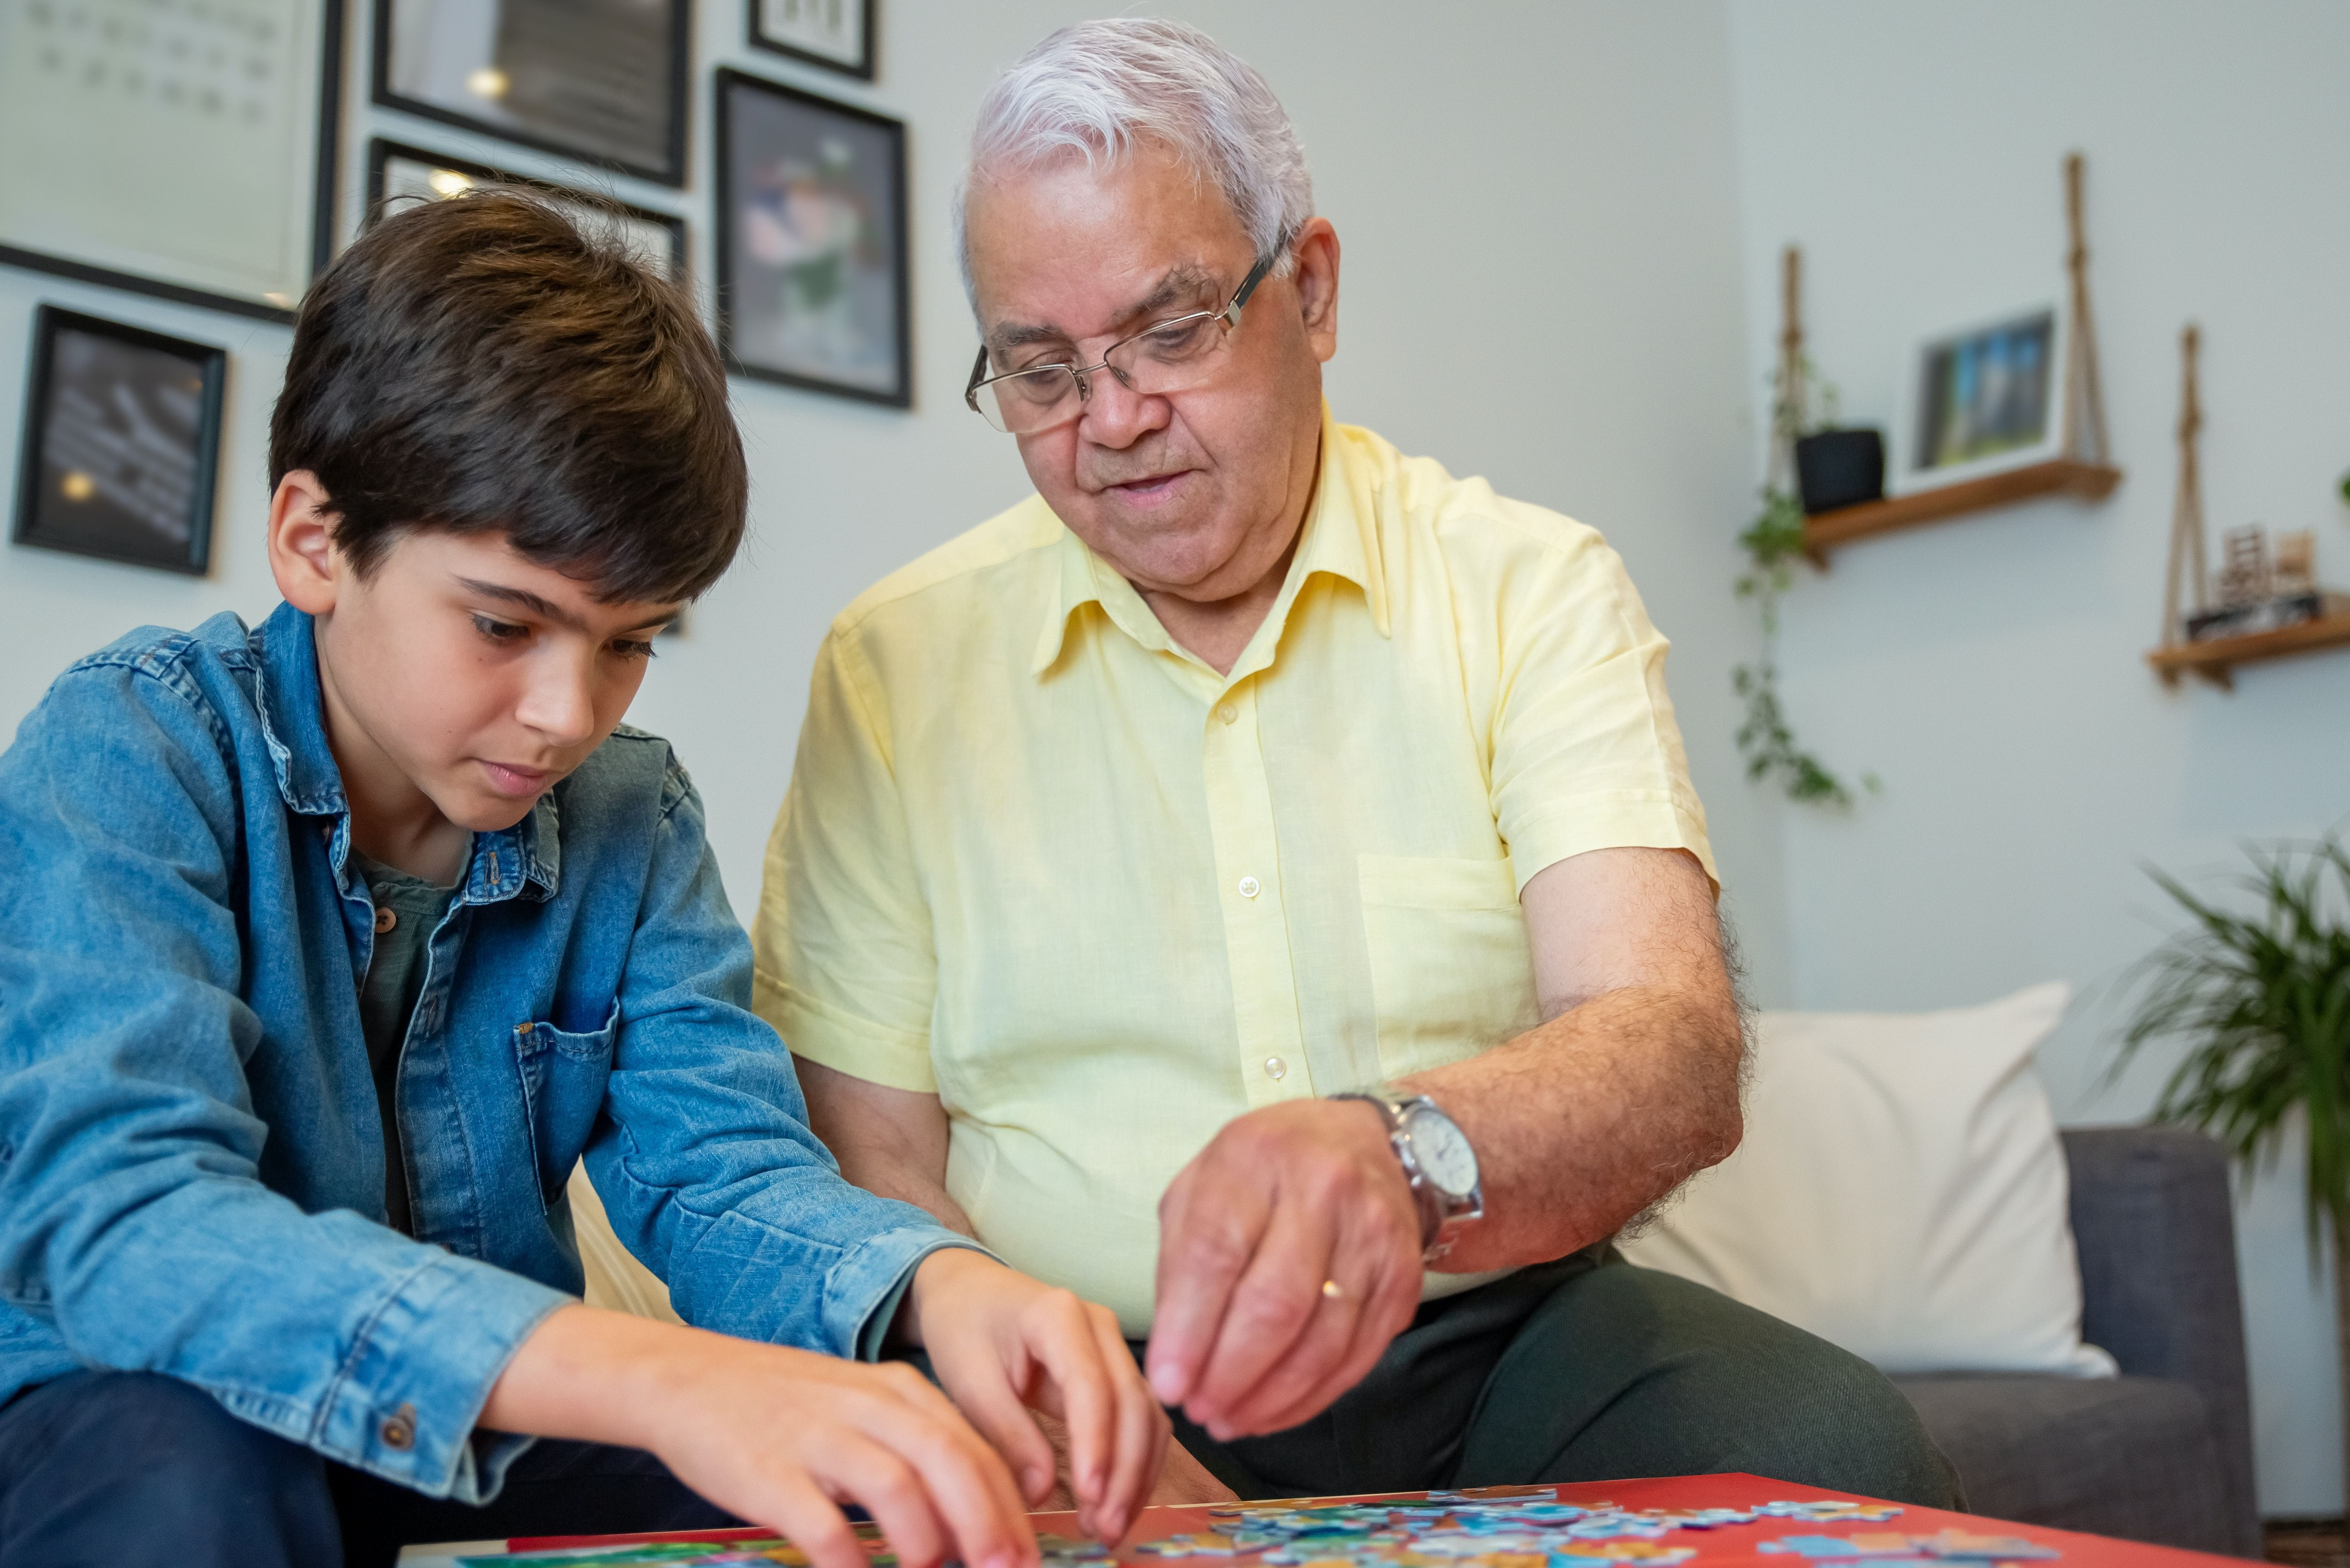 A young child and his grandfather play with a jigsaw puzle